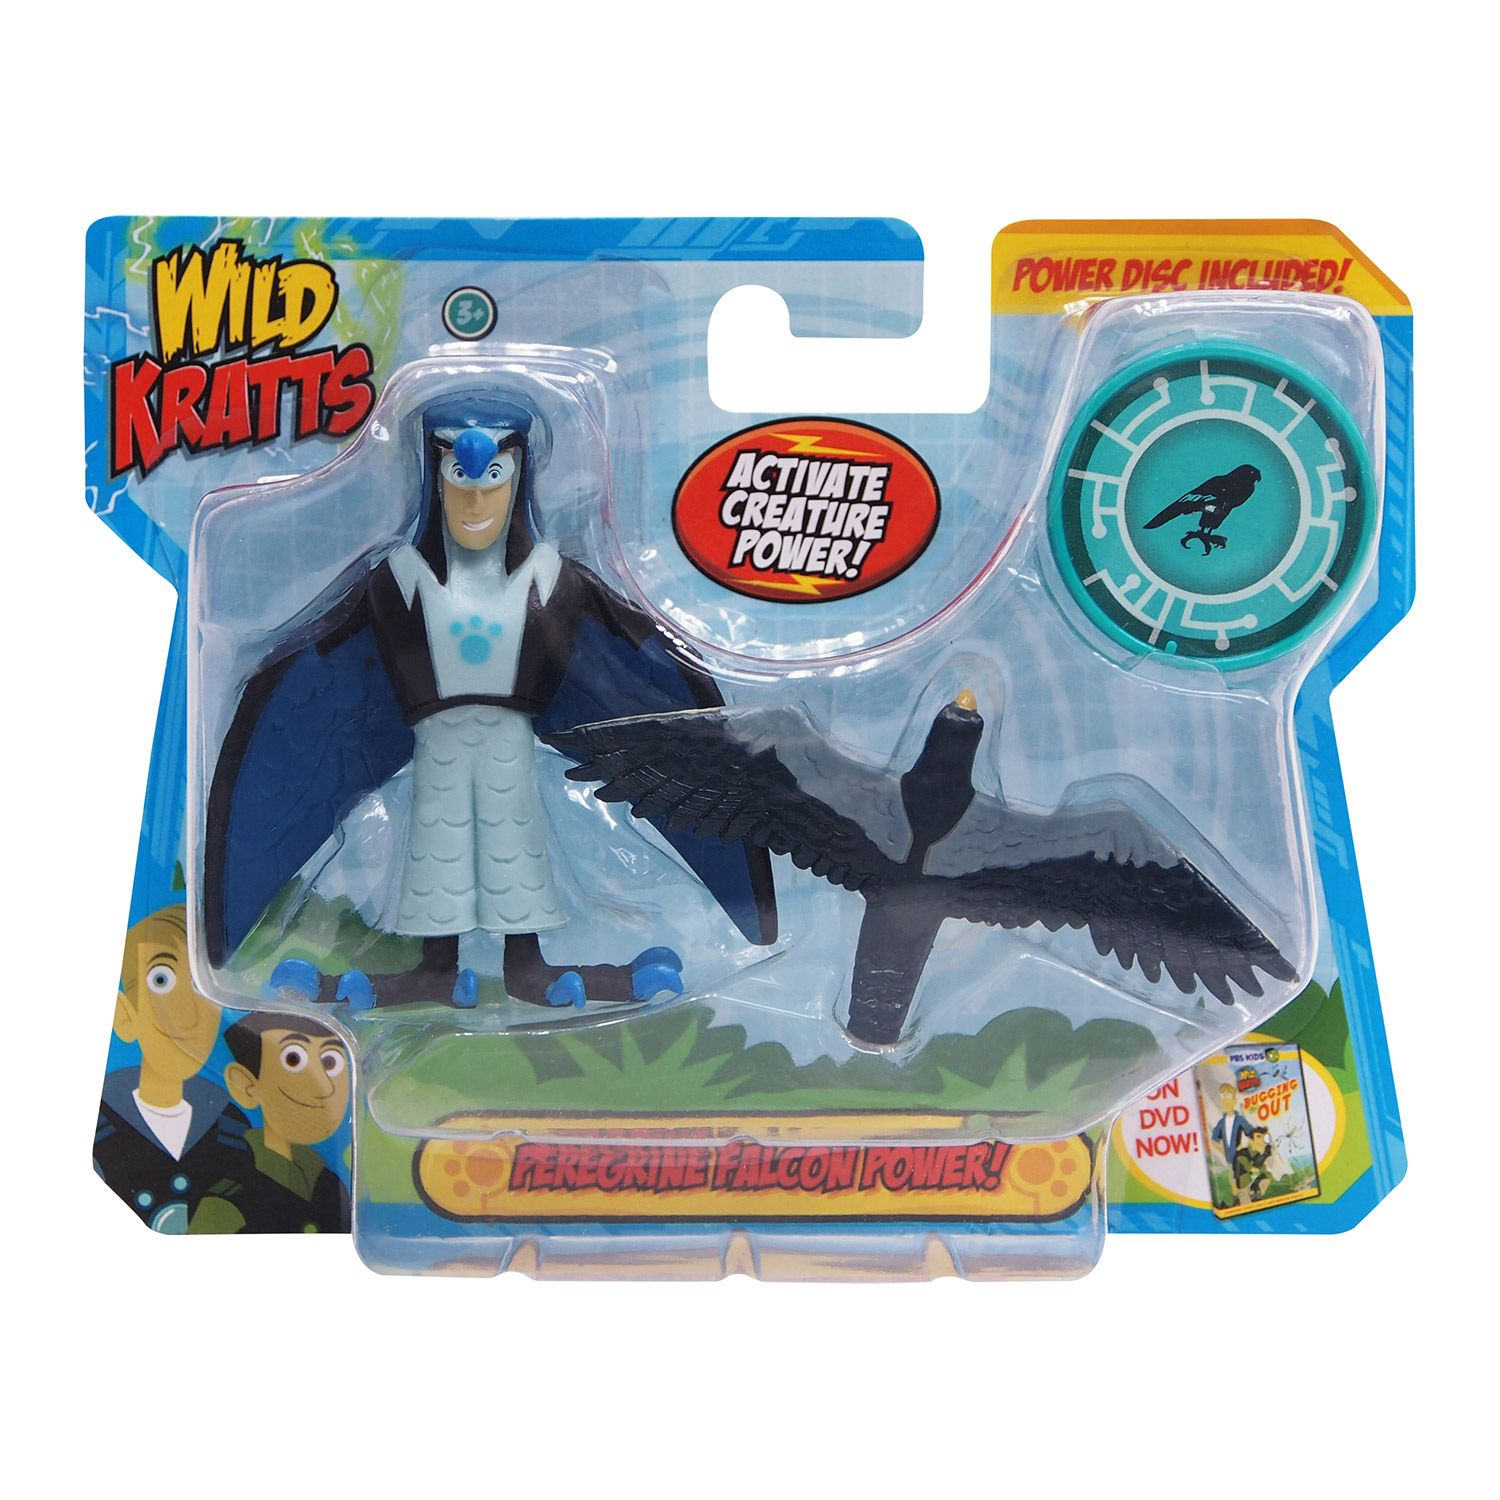 Wild Kratts Creature Power 2 Pack Falcon Powers Set